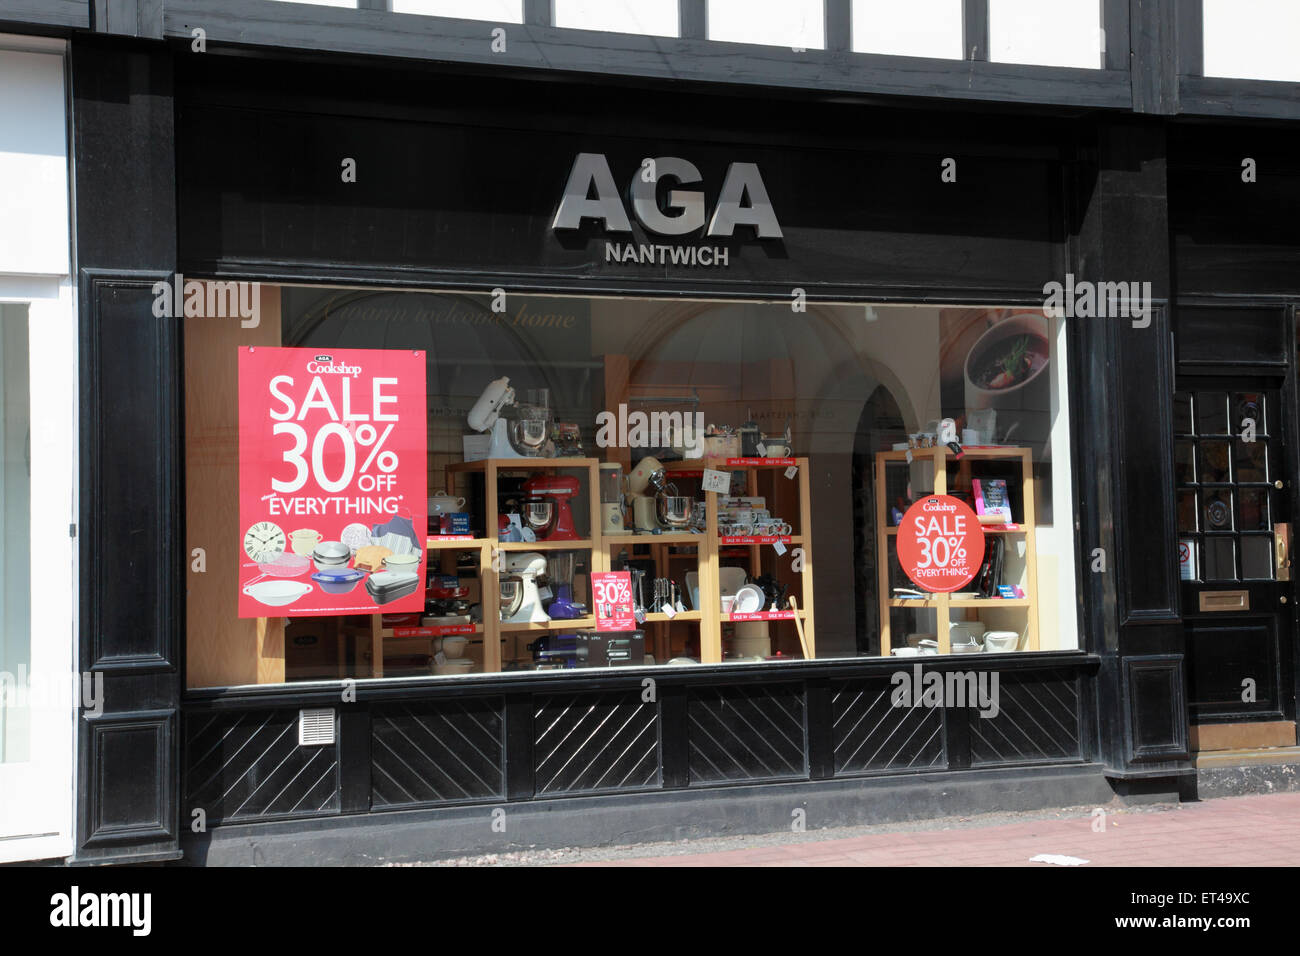 The Aga shop in Nantwich, Cheshire - Stock Image